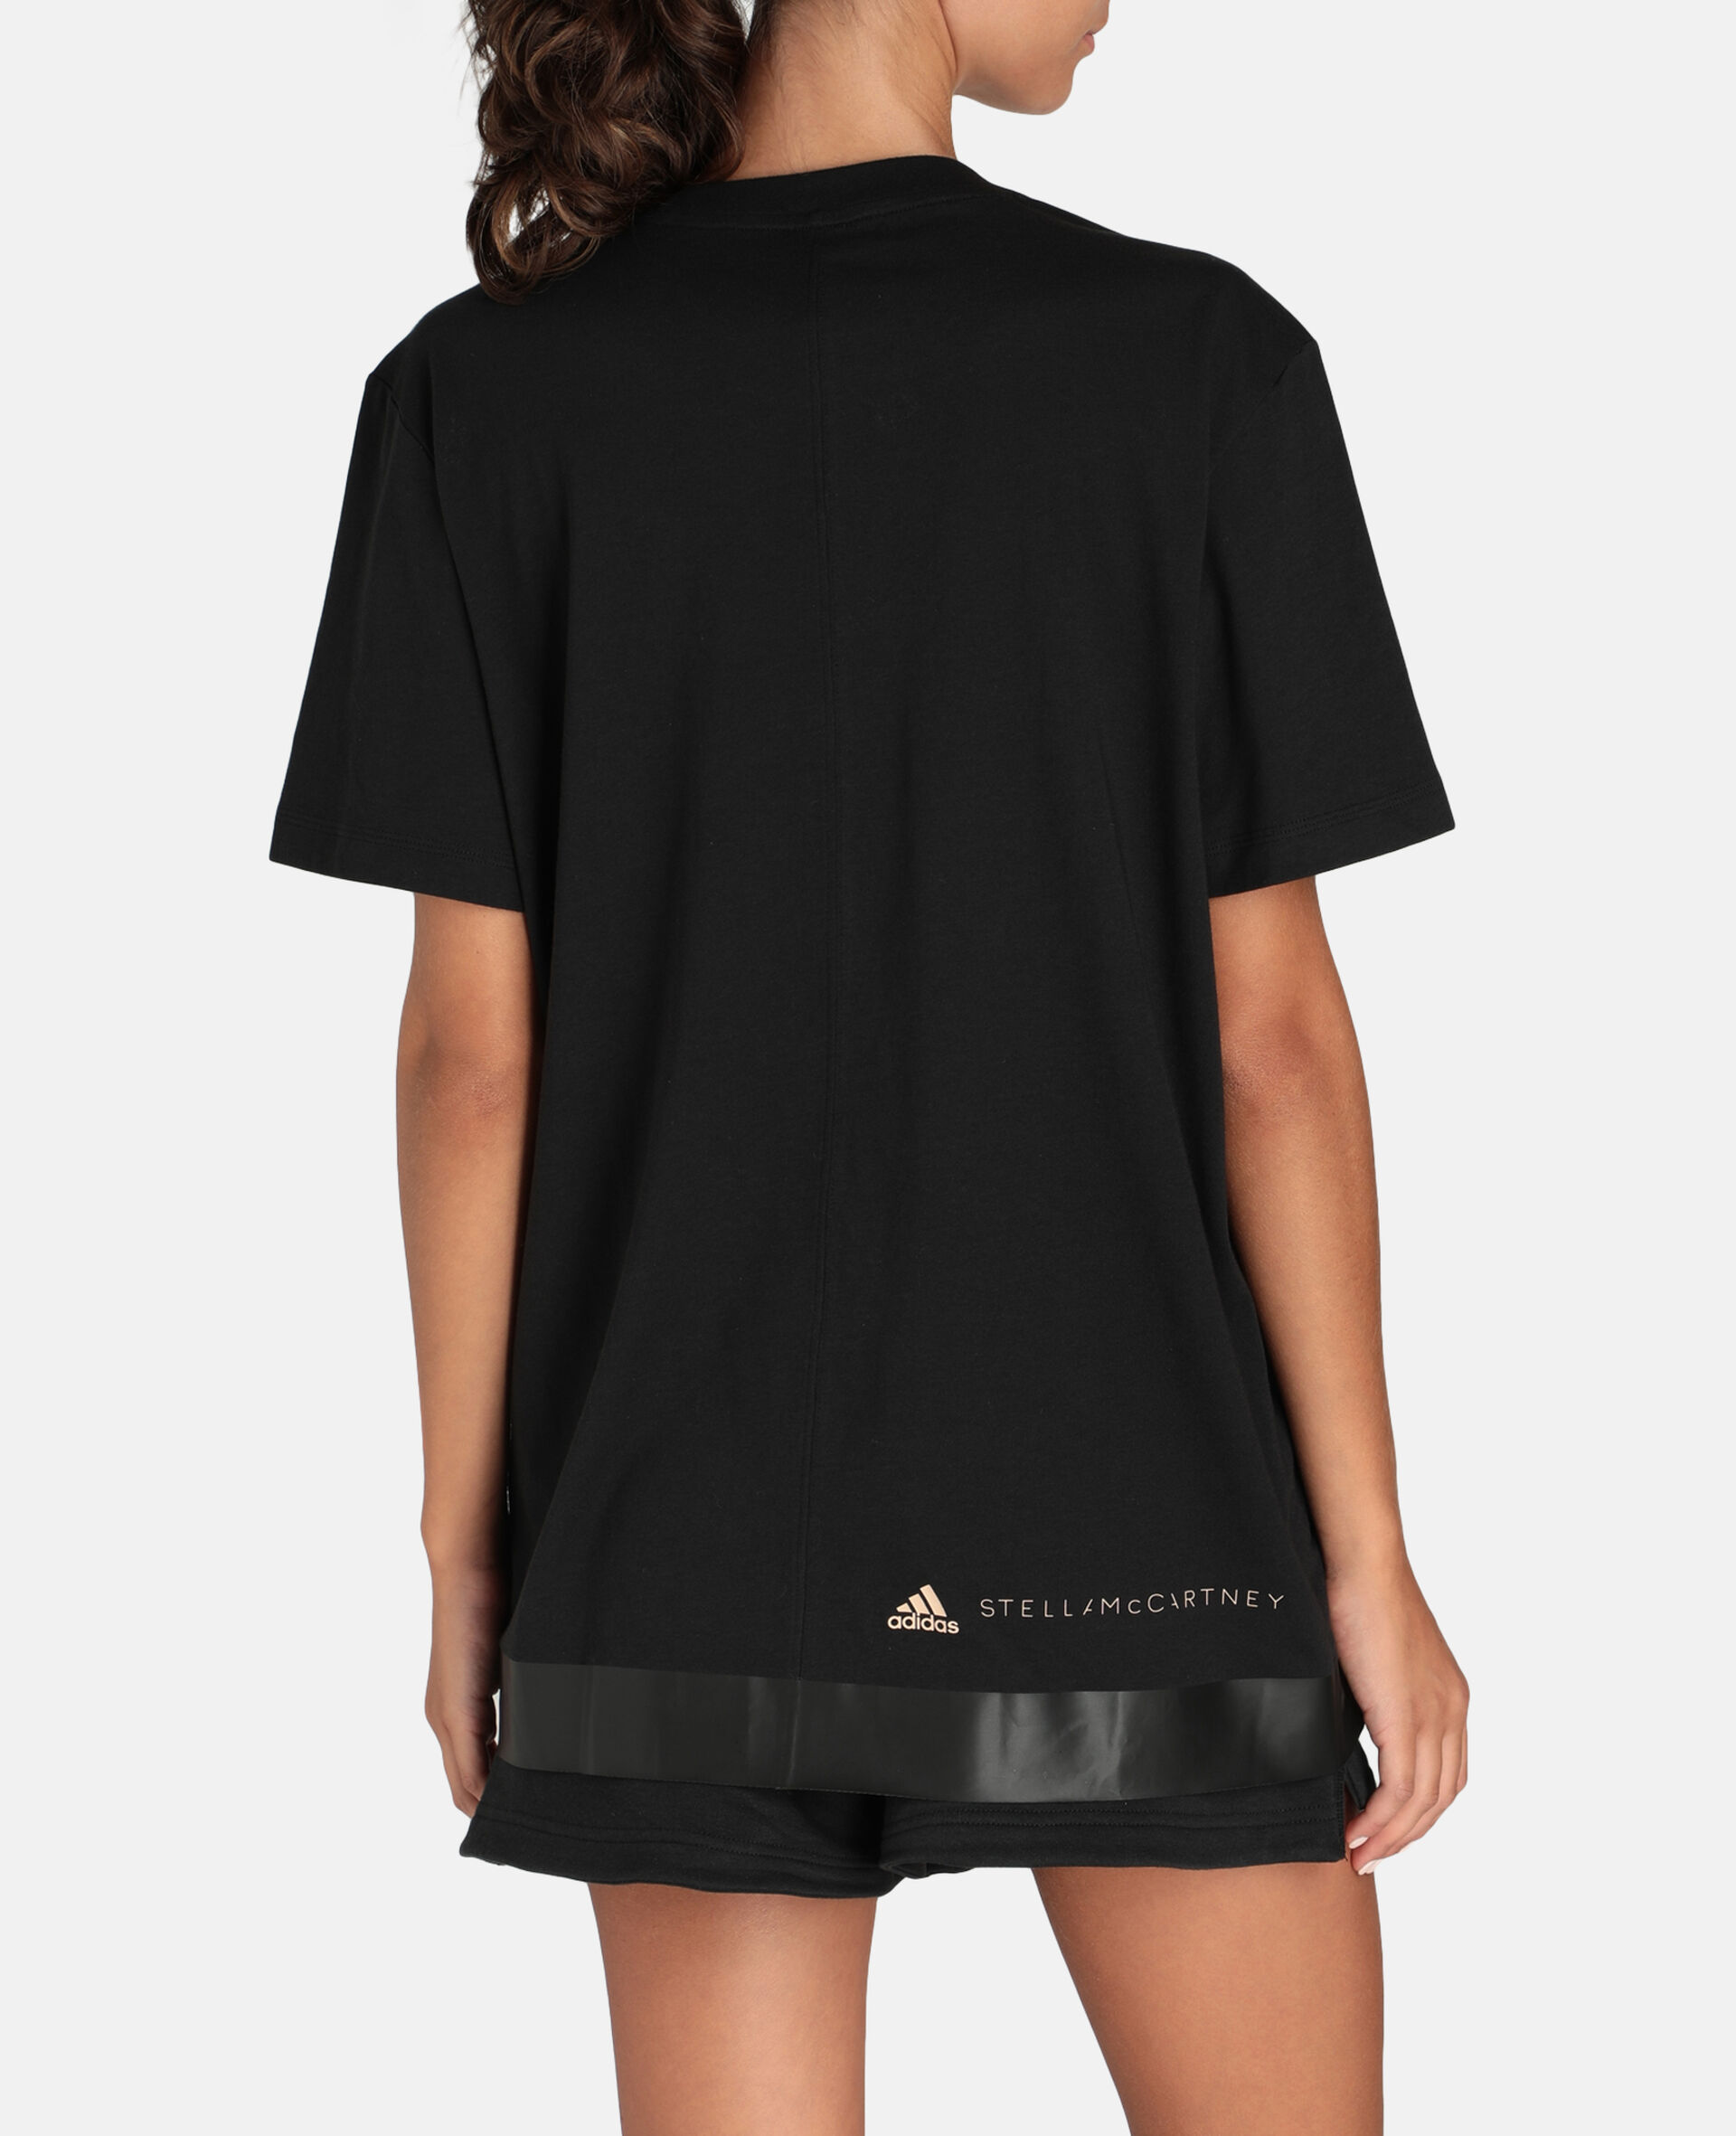 Black Training T-Shirt-Black-large image number 2